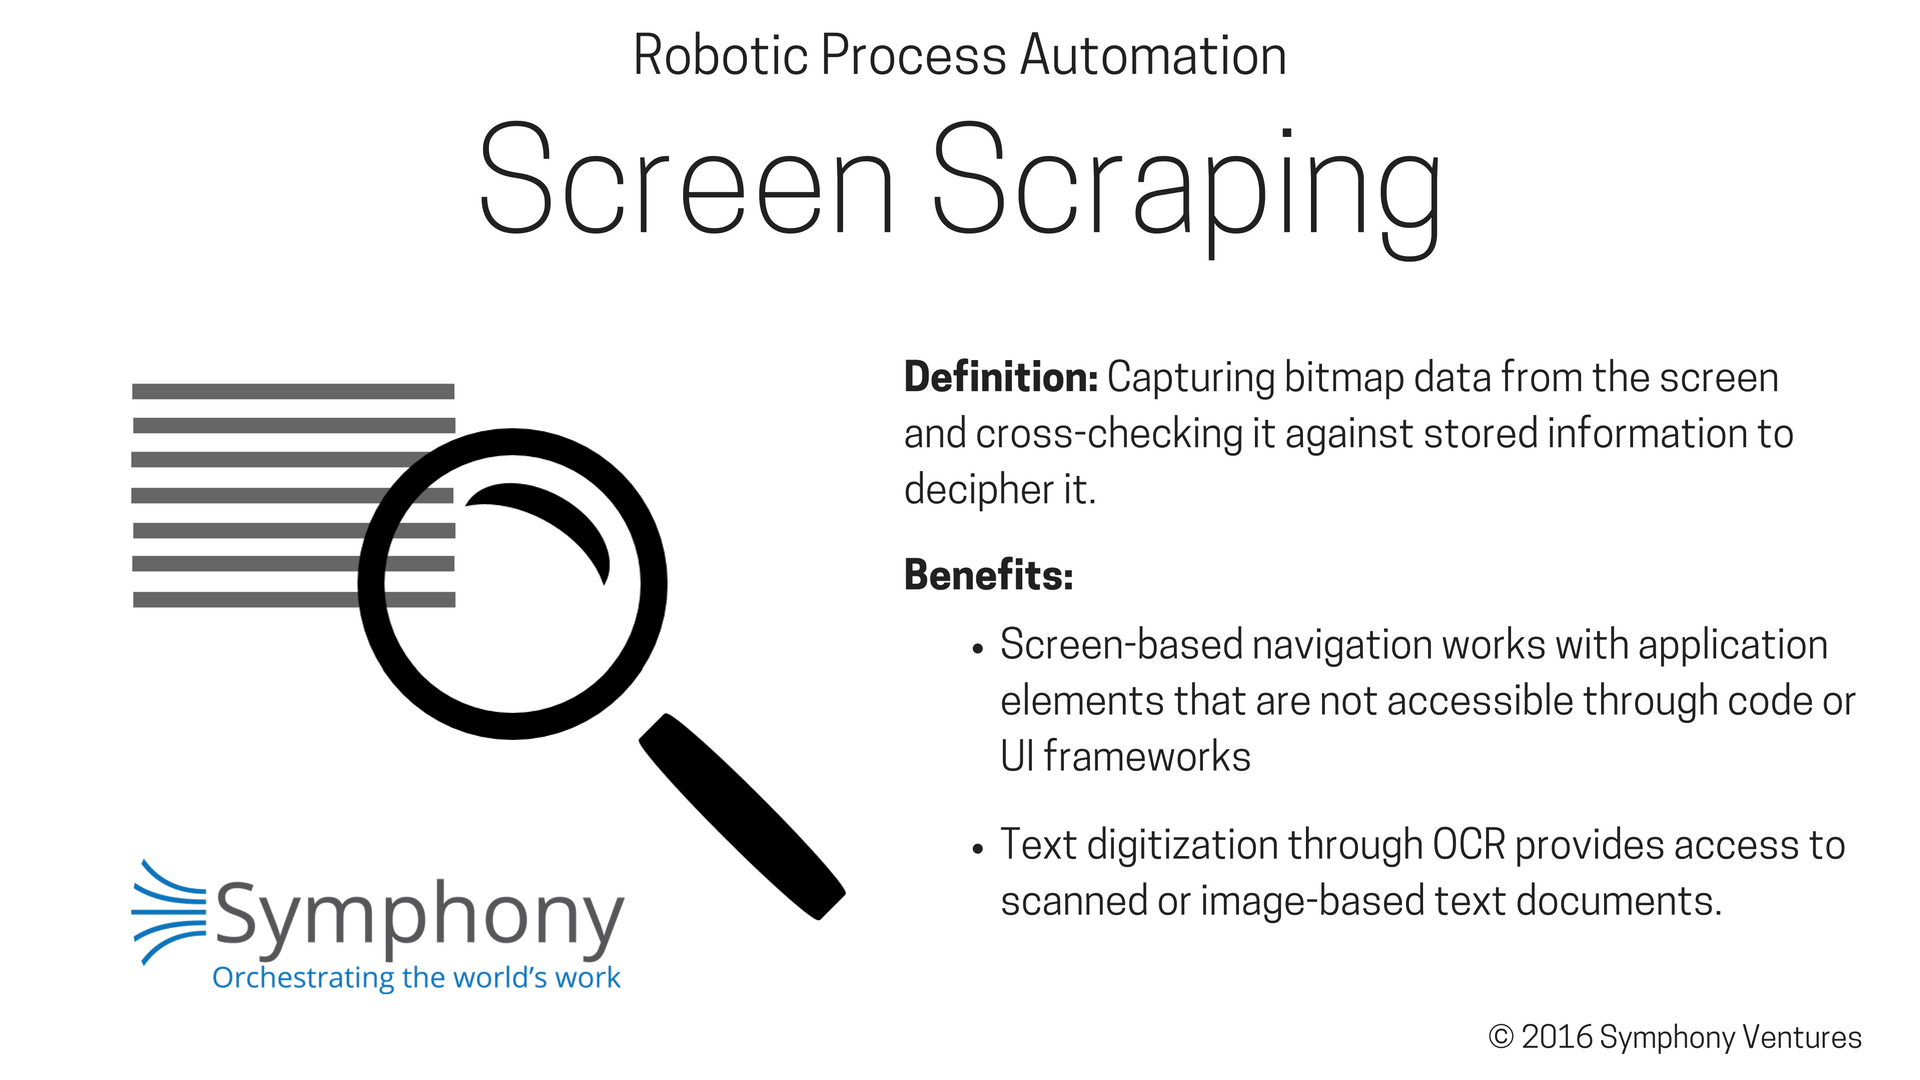 Screen Scraping in RPA